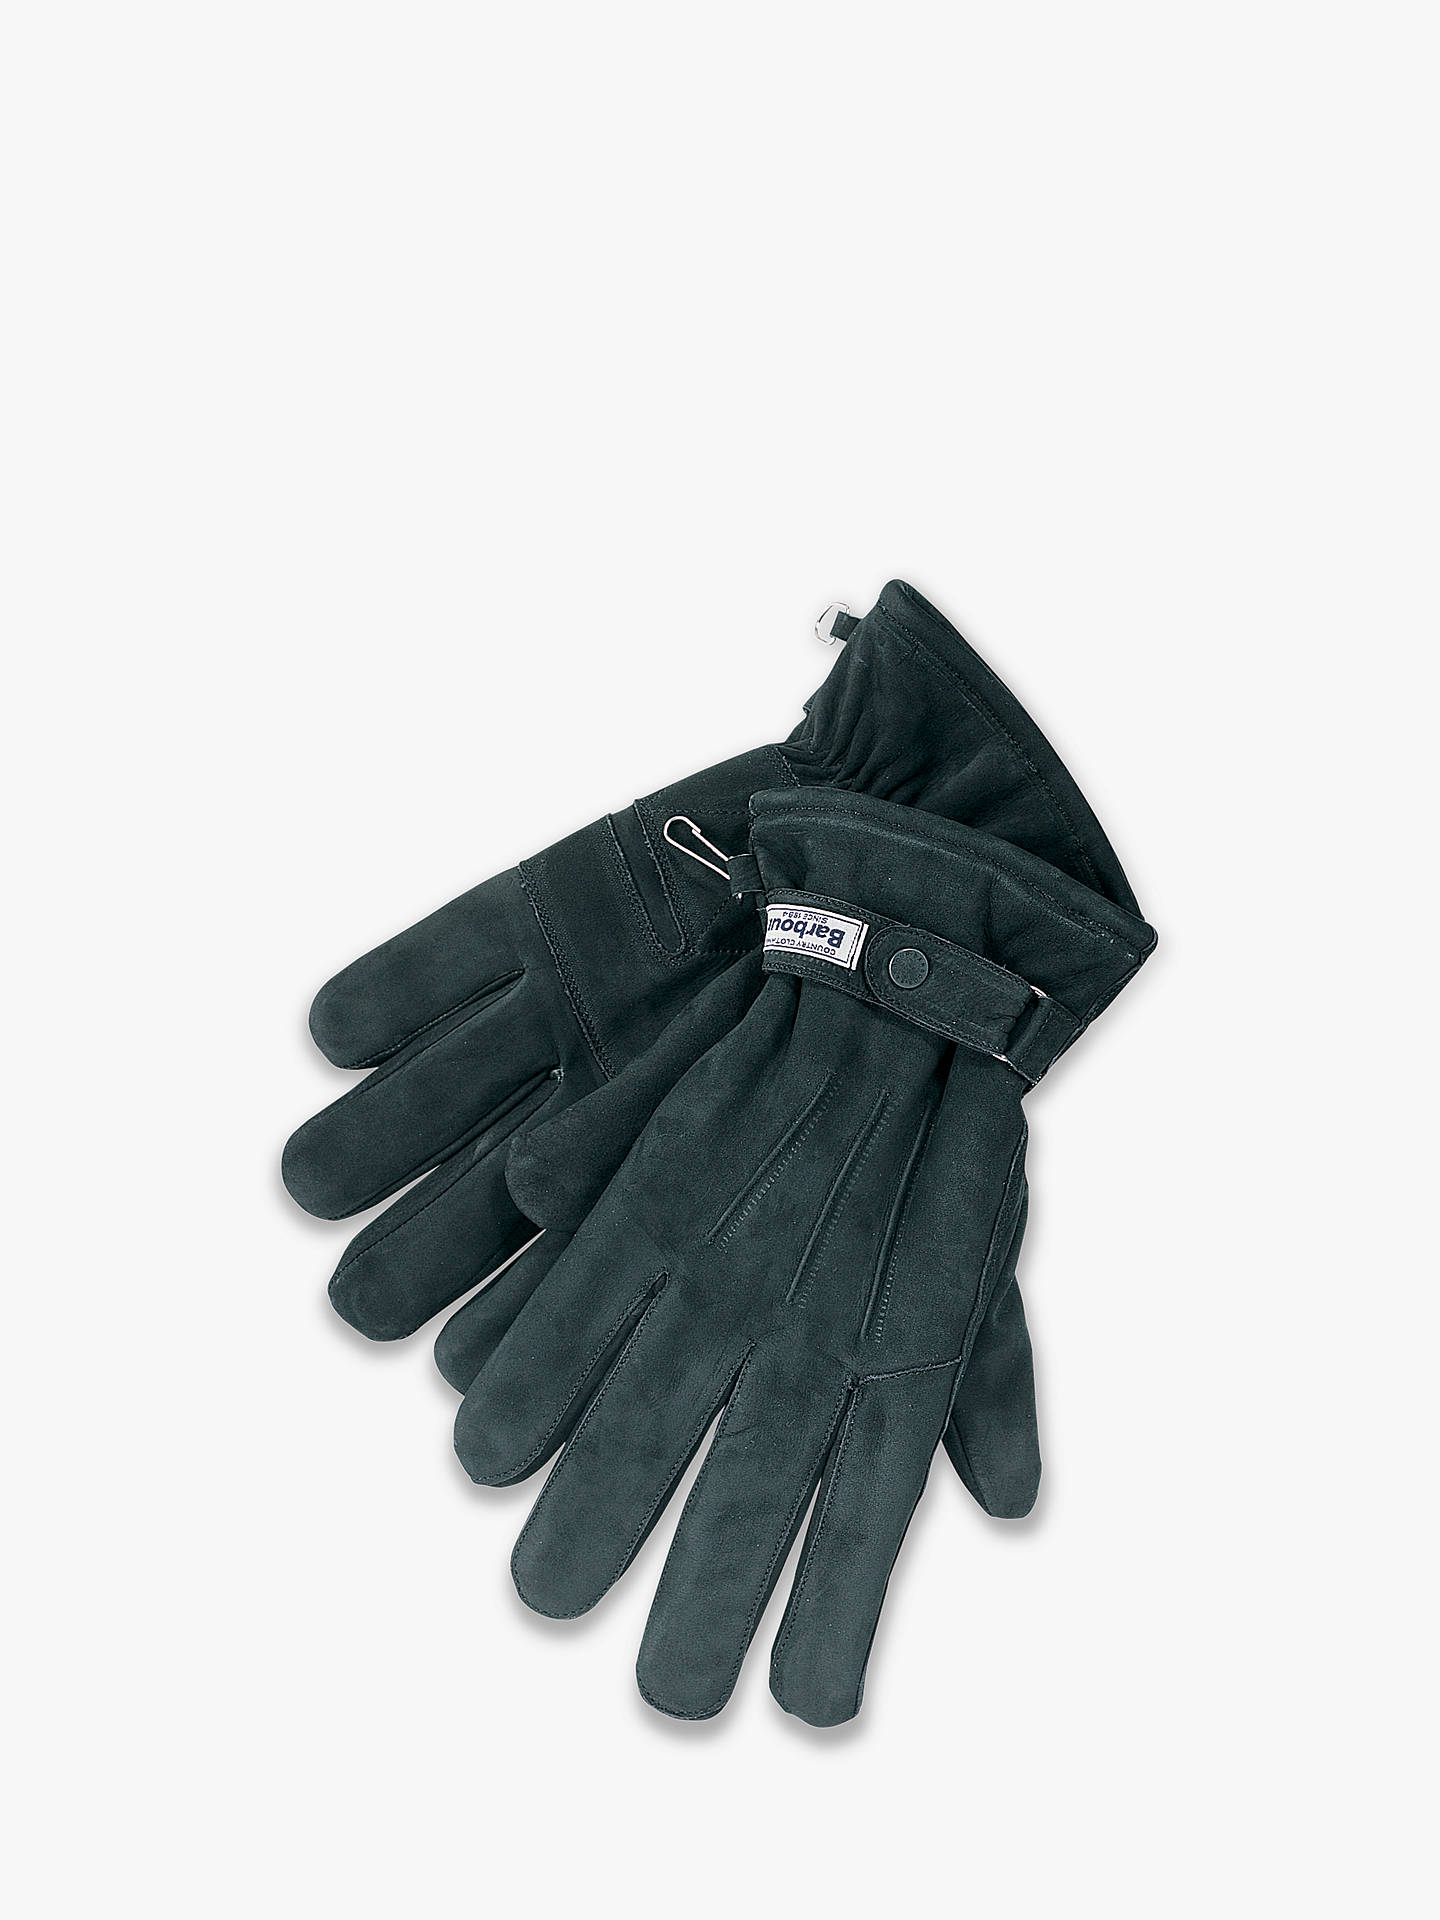 Buy Barbour Thinsulate Gloves, Black, XL Online at johnlewis.com